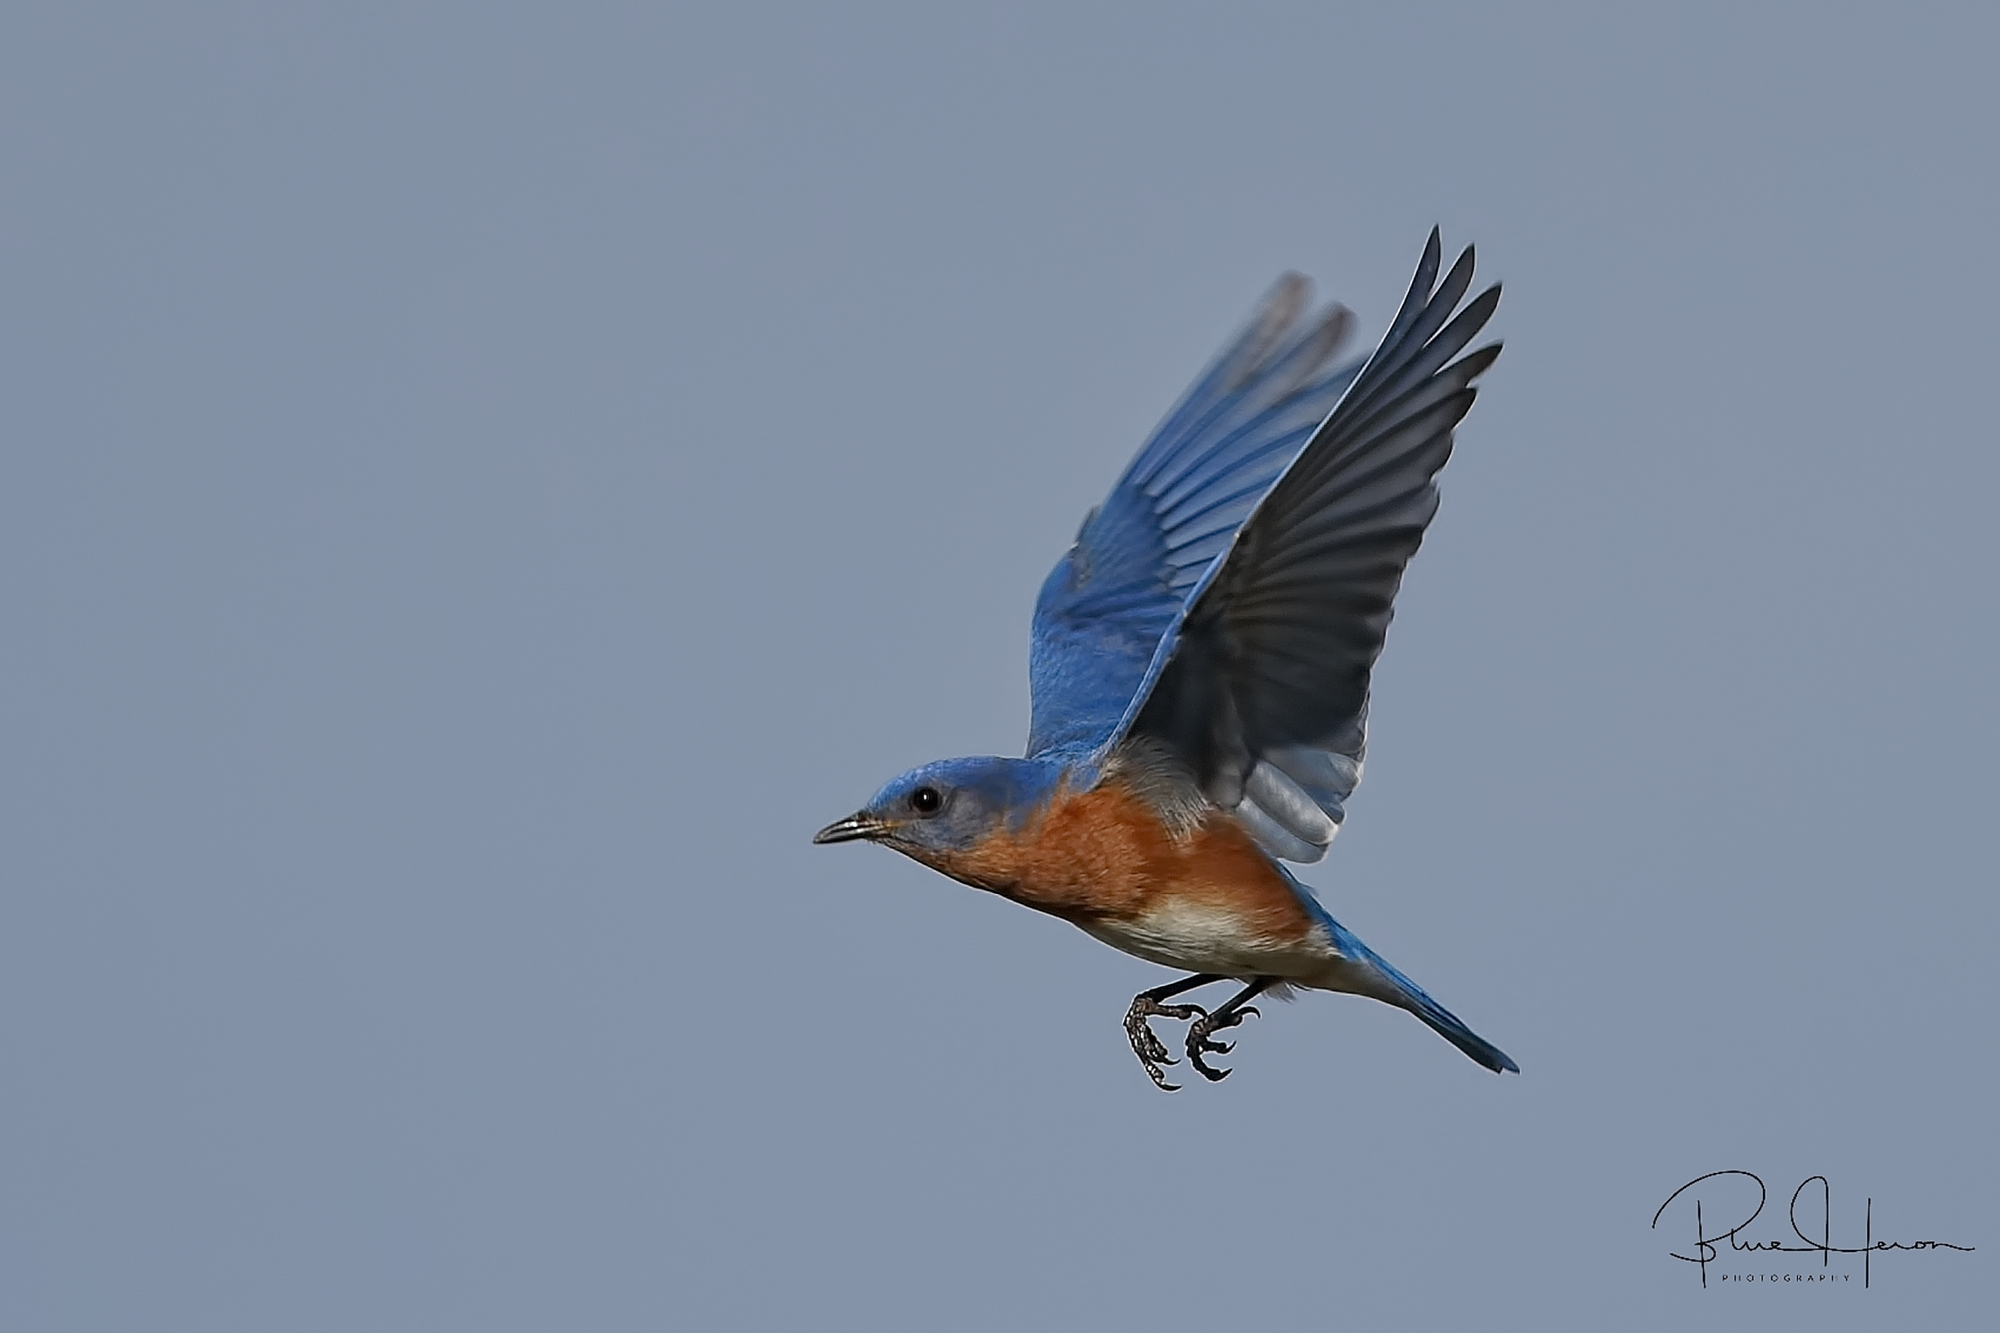 Daddy Bluebird wings by too!